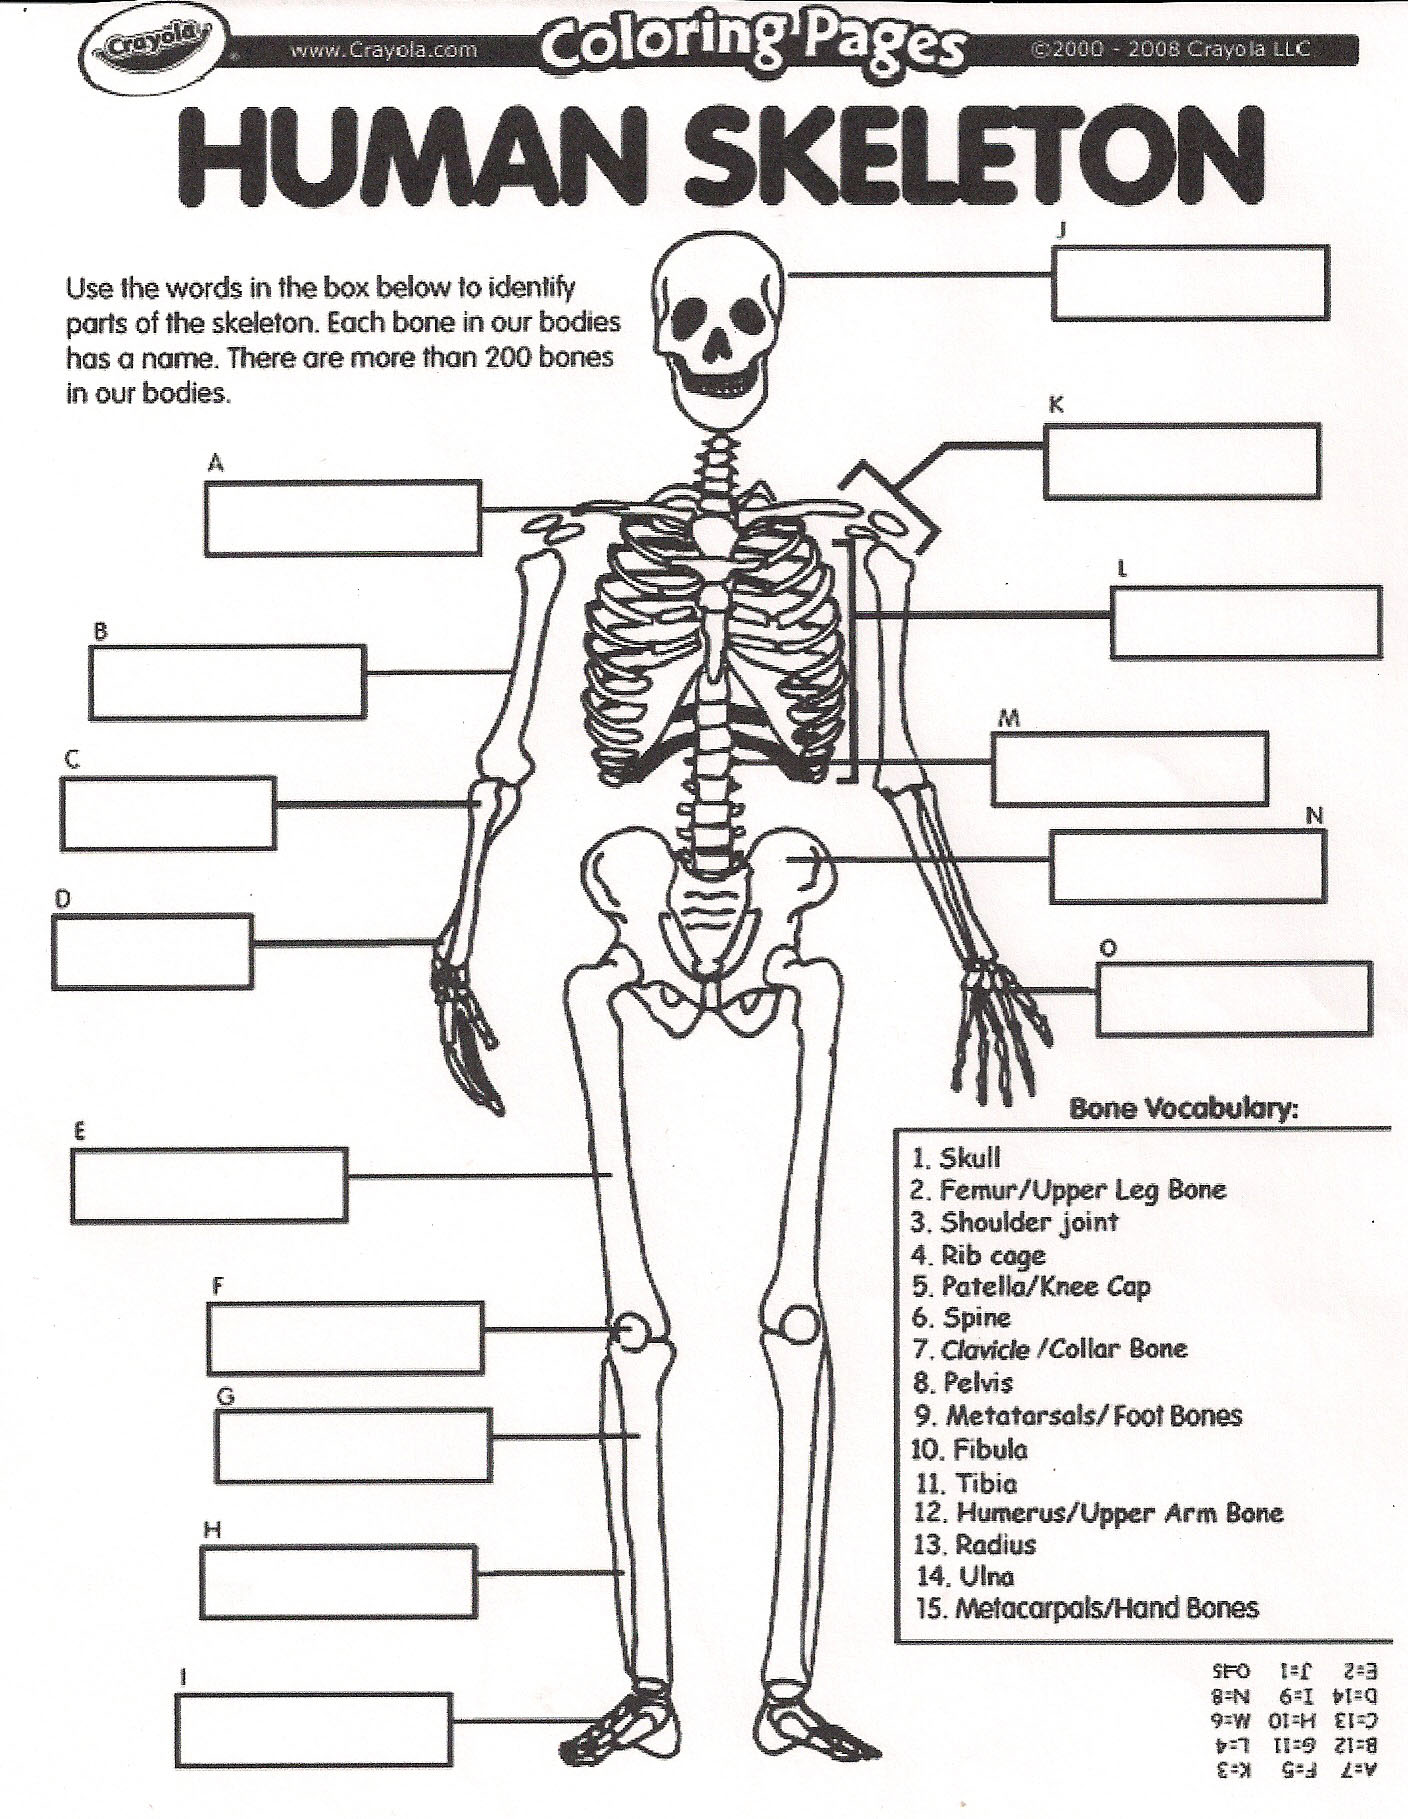 worksheet Body Systems Worksheets High School skeletal system worksheets free library download and skelet l w ksheet high school ksheets libr ry